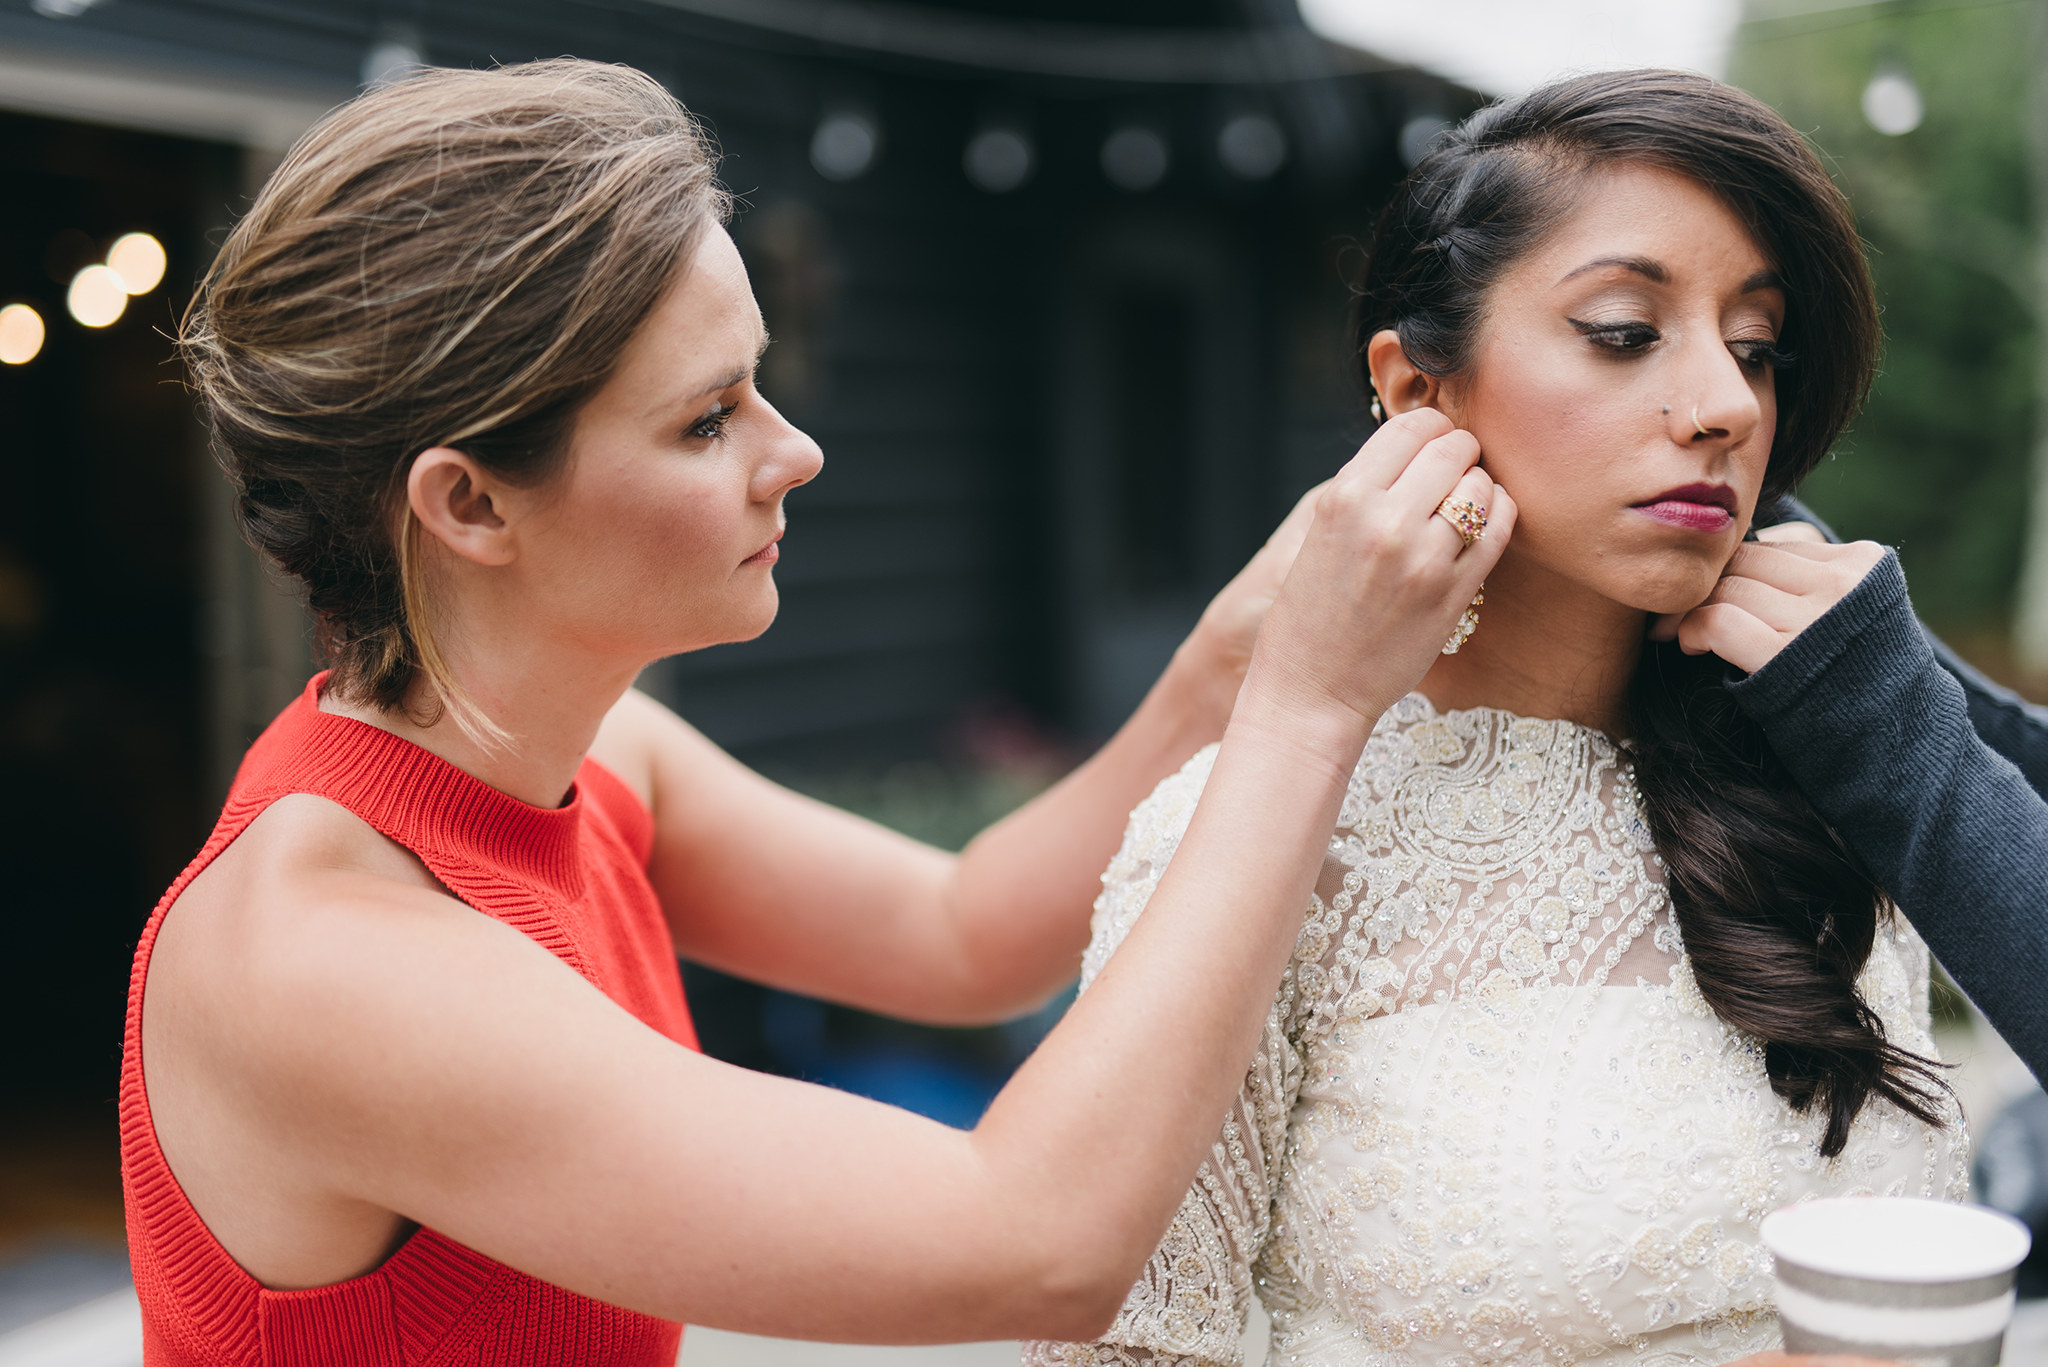 martha stewart weddings - hair & makeup trials for your wedding day